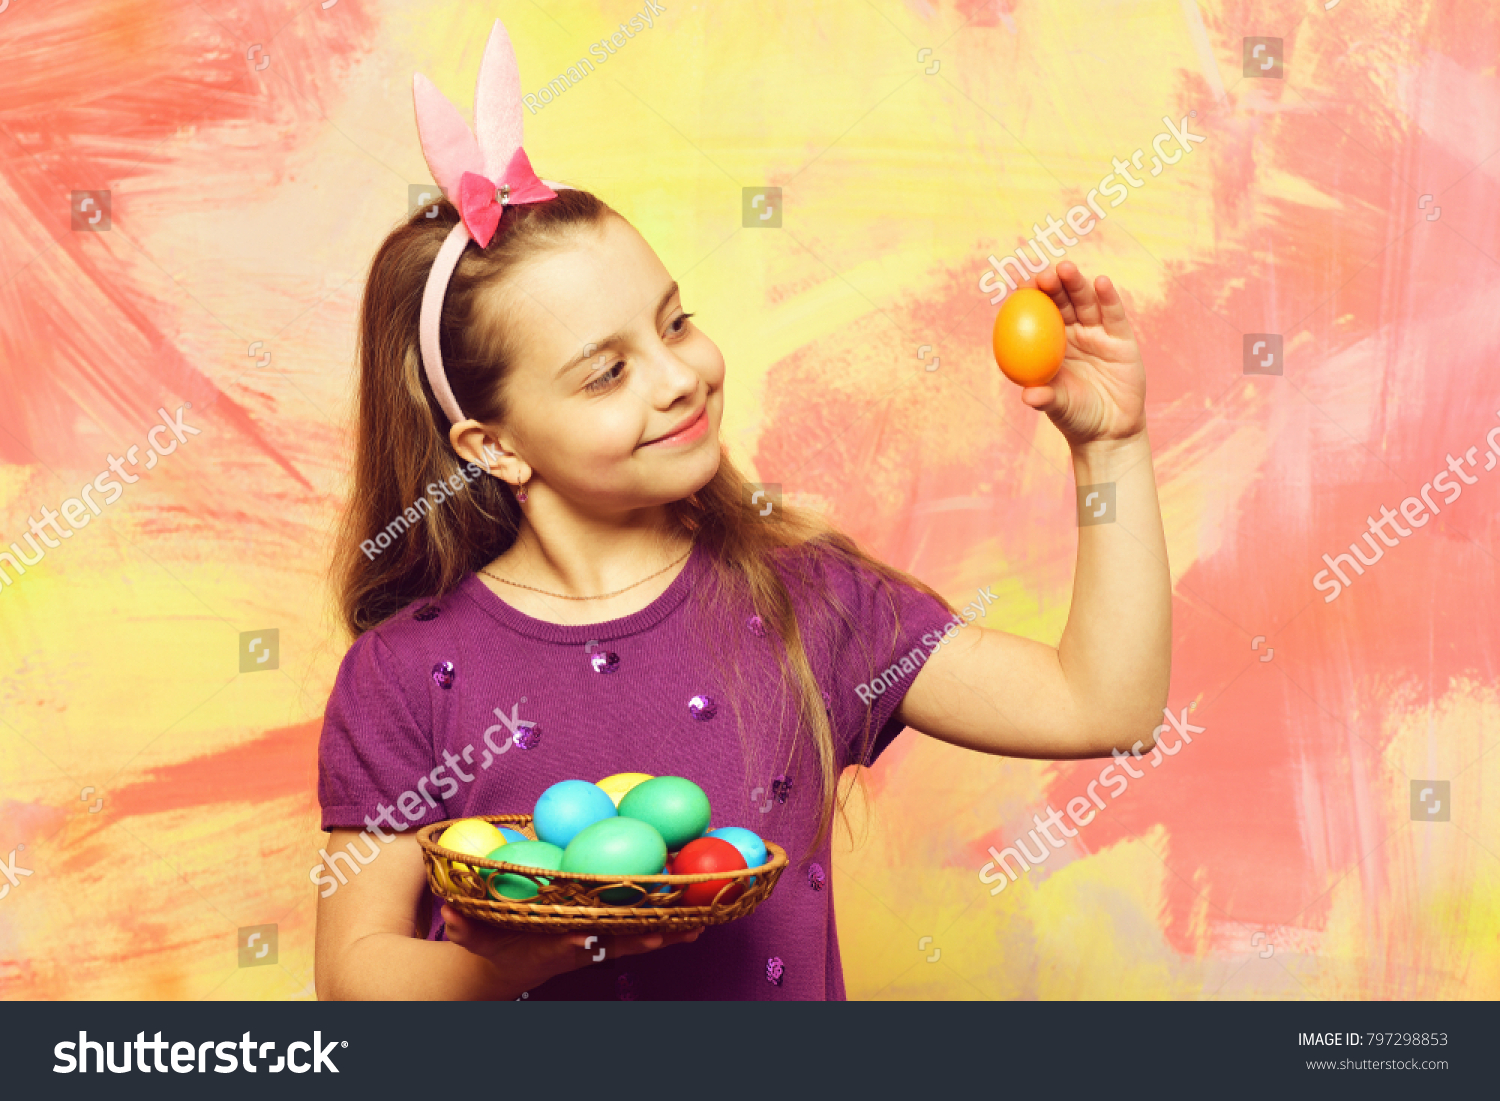 Small Baby Girl Cute Child Happy Stock Photo Edit Now 797298853